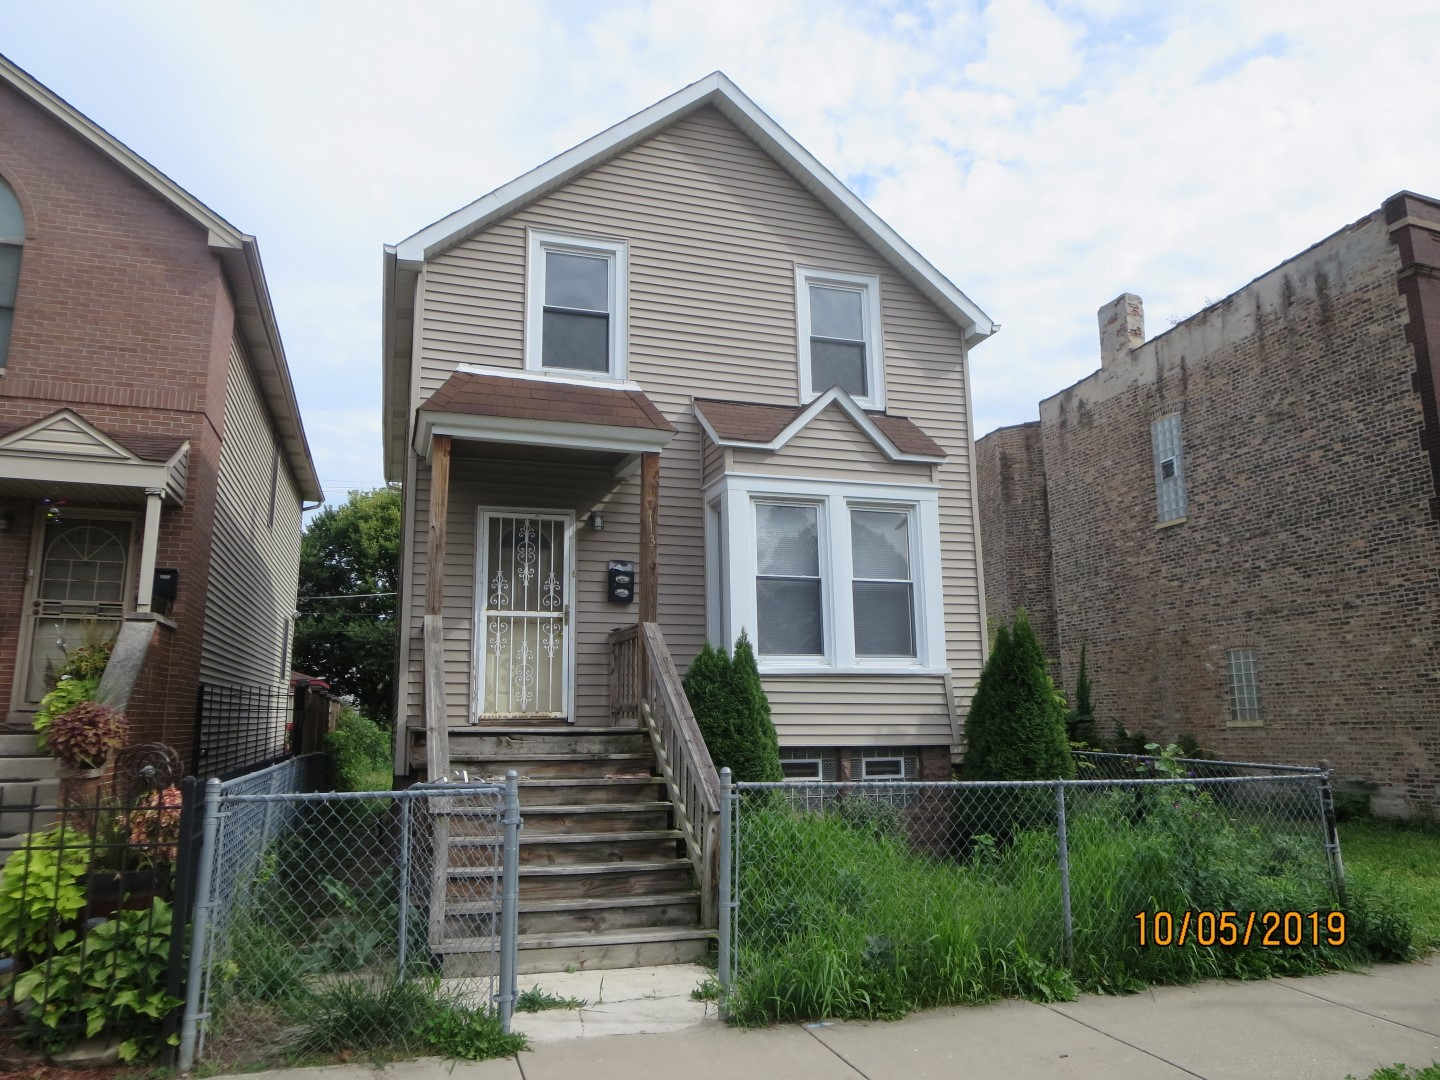 READY FOR YOUR IDEAS, GREAT OPPORTUNITY FOR REHAB.   SINGLE FAMILY HOME SOLD AS-IS AND READY FOR A NEW FAMILY.   NOT BANK OWNED AND NOT A SHORT SALE, OWNERS ARE LOCAL AND MOTIVATED.  THIS HOME IS BEING SOLD AS-IS, SO PLEASE INSPECT PRIOR TO SUBMITTING AN OFFER.  PLEASE NOTE: 0% TAX PRORATIONS ARE OFFERED, THE SELLER WILL PAY CURRENT AND ALL PRIOR TAX BUT 0% CREDIT FOR FUTURE BILLS.  SPECIAL WARRANTY DEED AT CLOSING. NO SURVEY.  FOR FASTER RESPONSE PLEASE USE SELLERS CONTRACT, ADDENDUM AND DISCLOSURES UNDER DOCUMENTS.